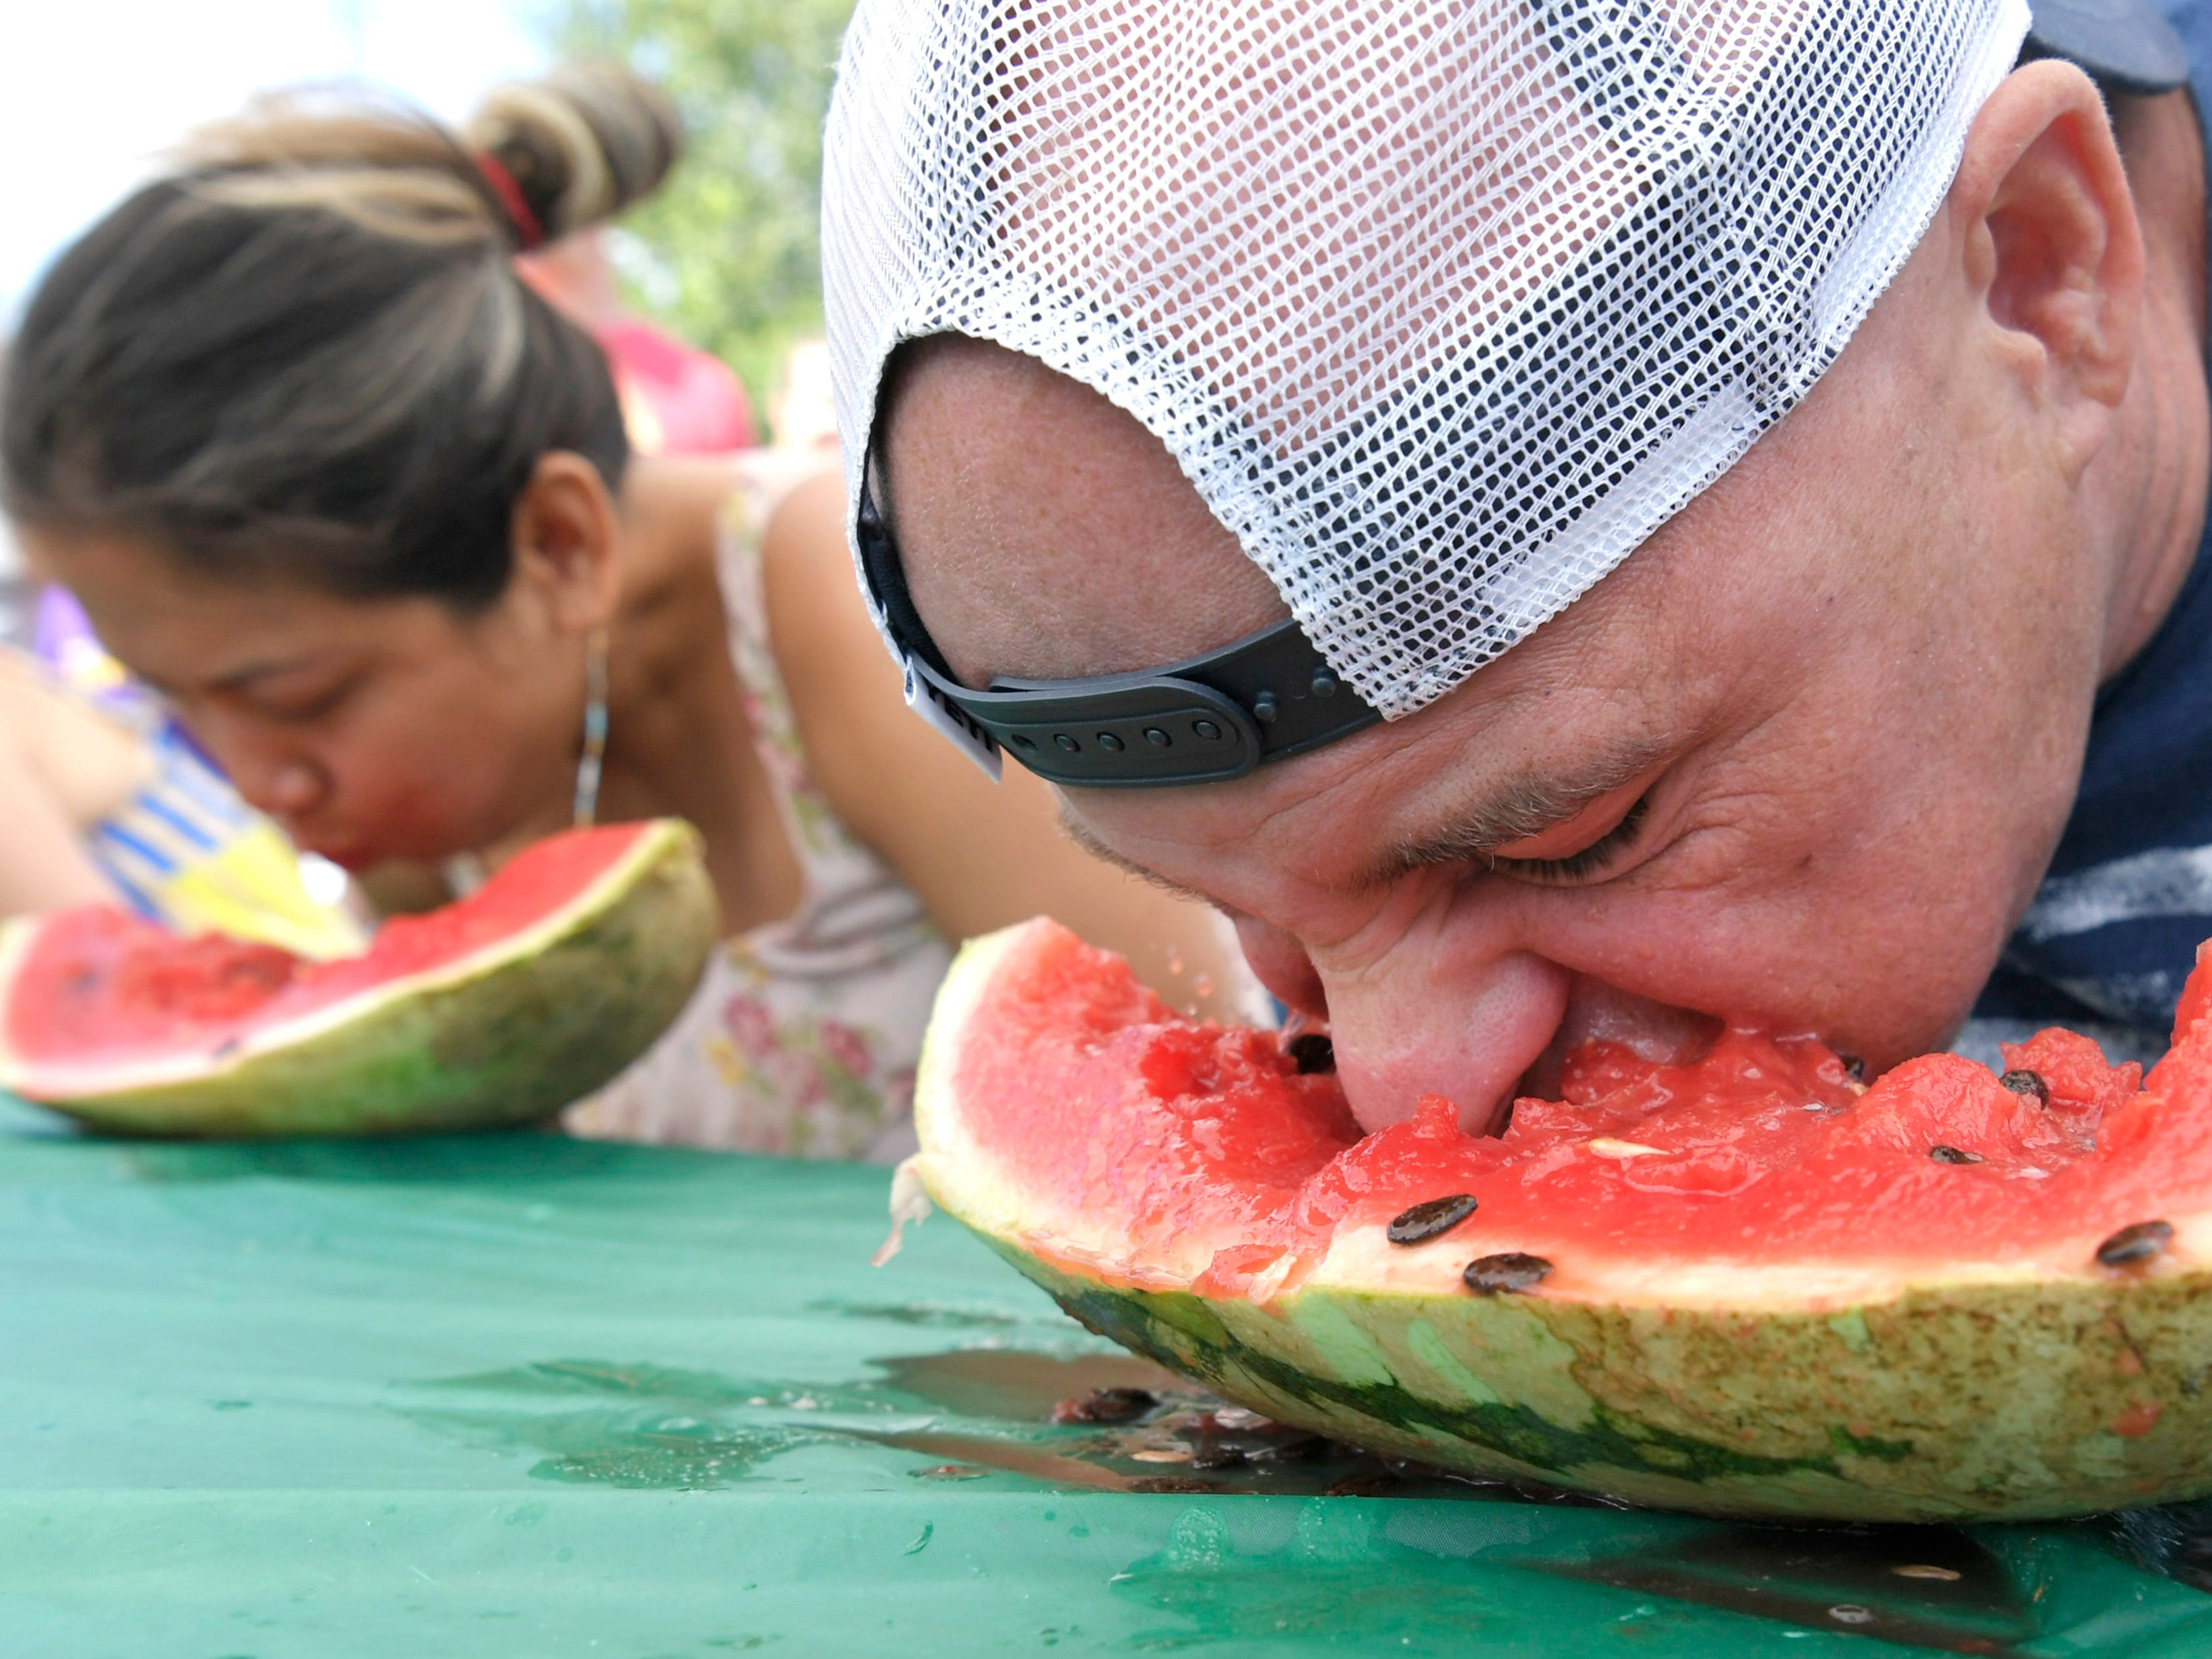 Tim Malone competes in the adult watermelon eating contest during Franklin Watermelon Festival  at the Franklin Farmers Market in Franklin, Tenn. on Saturday,  August 18, 2018.